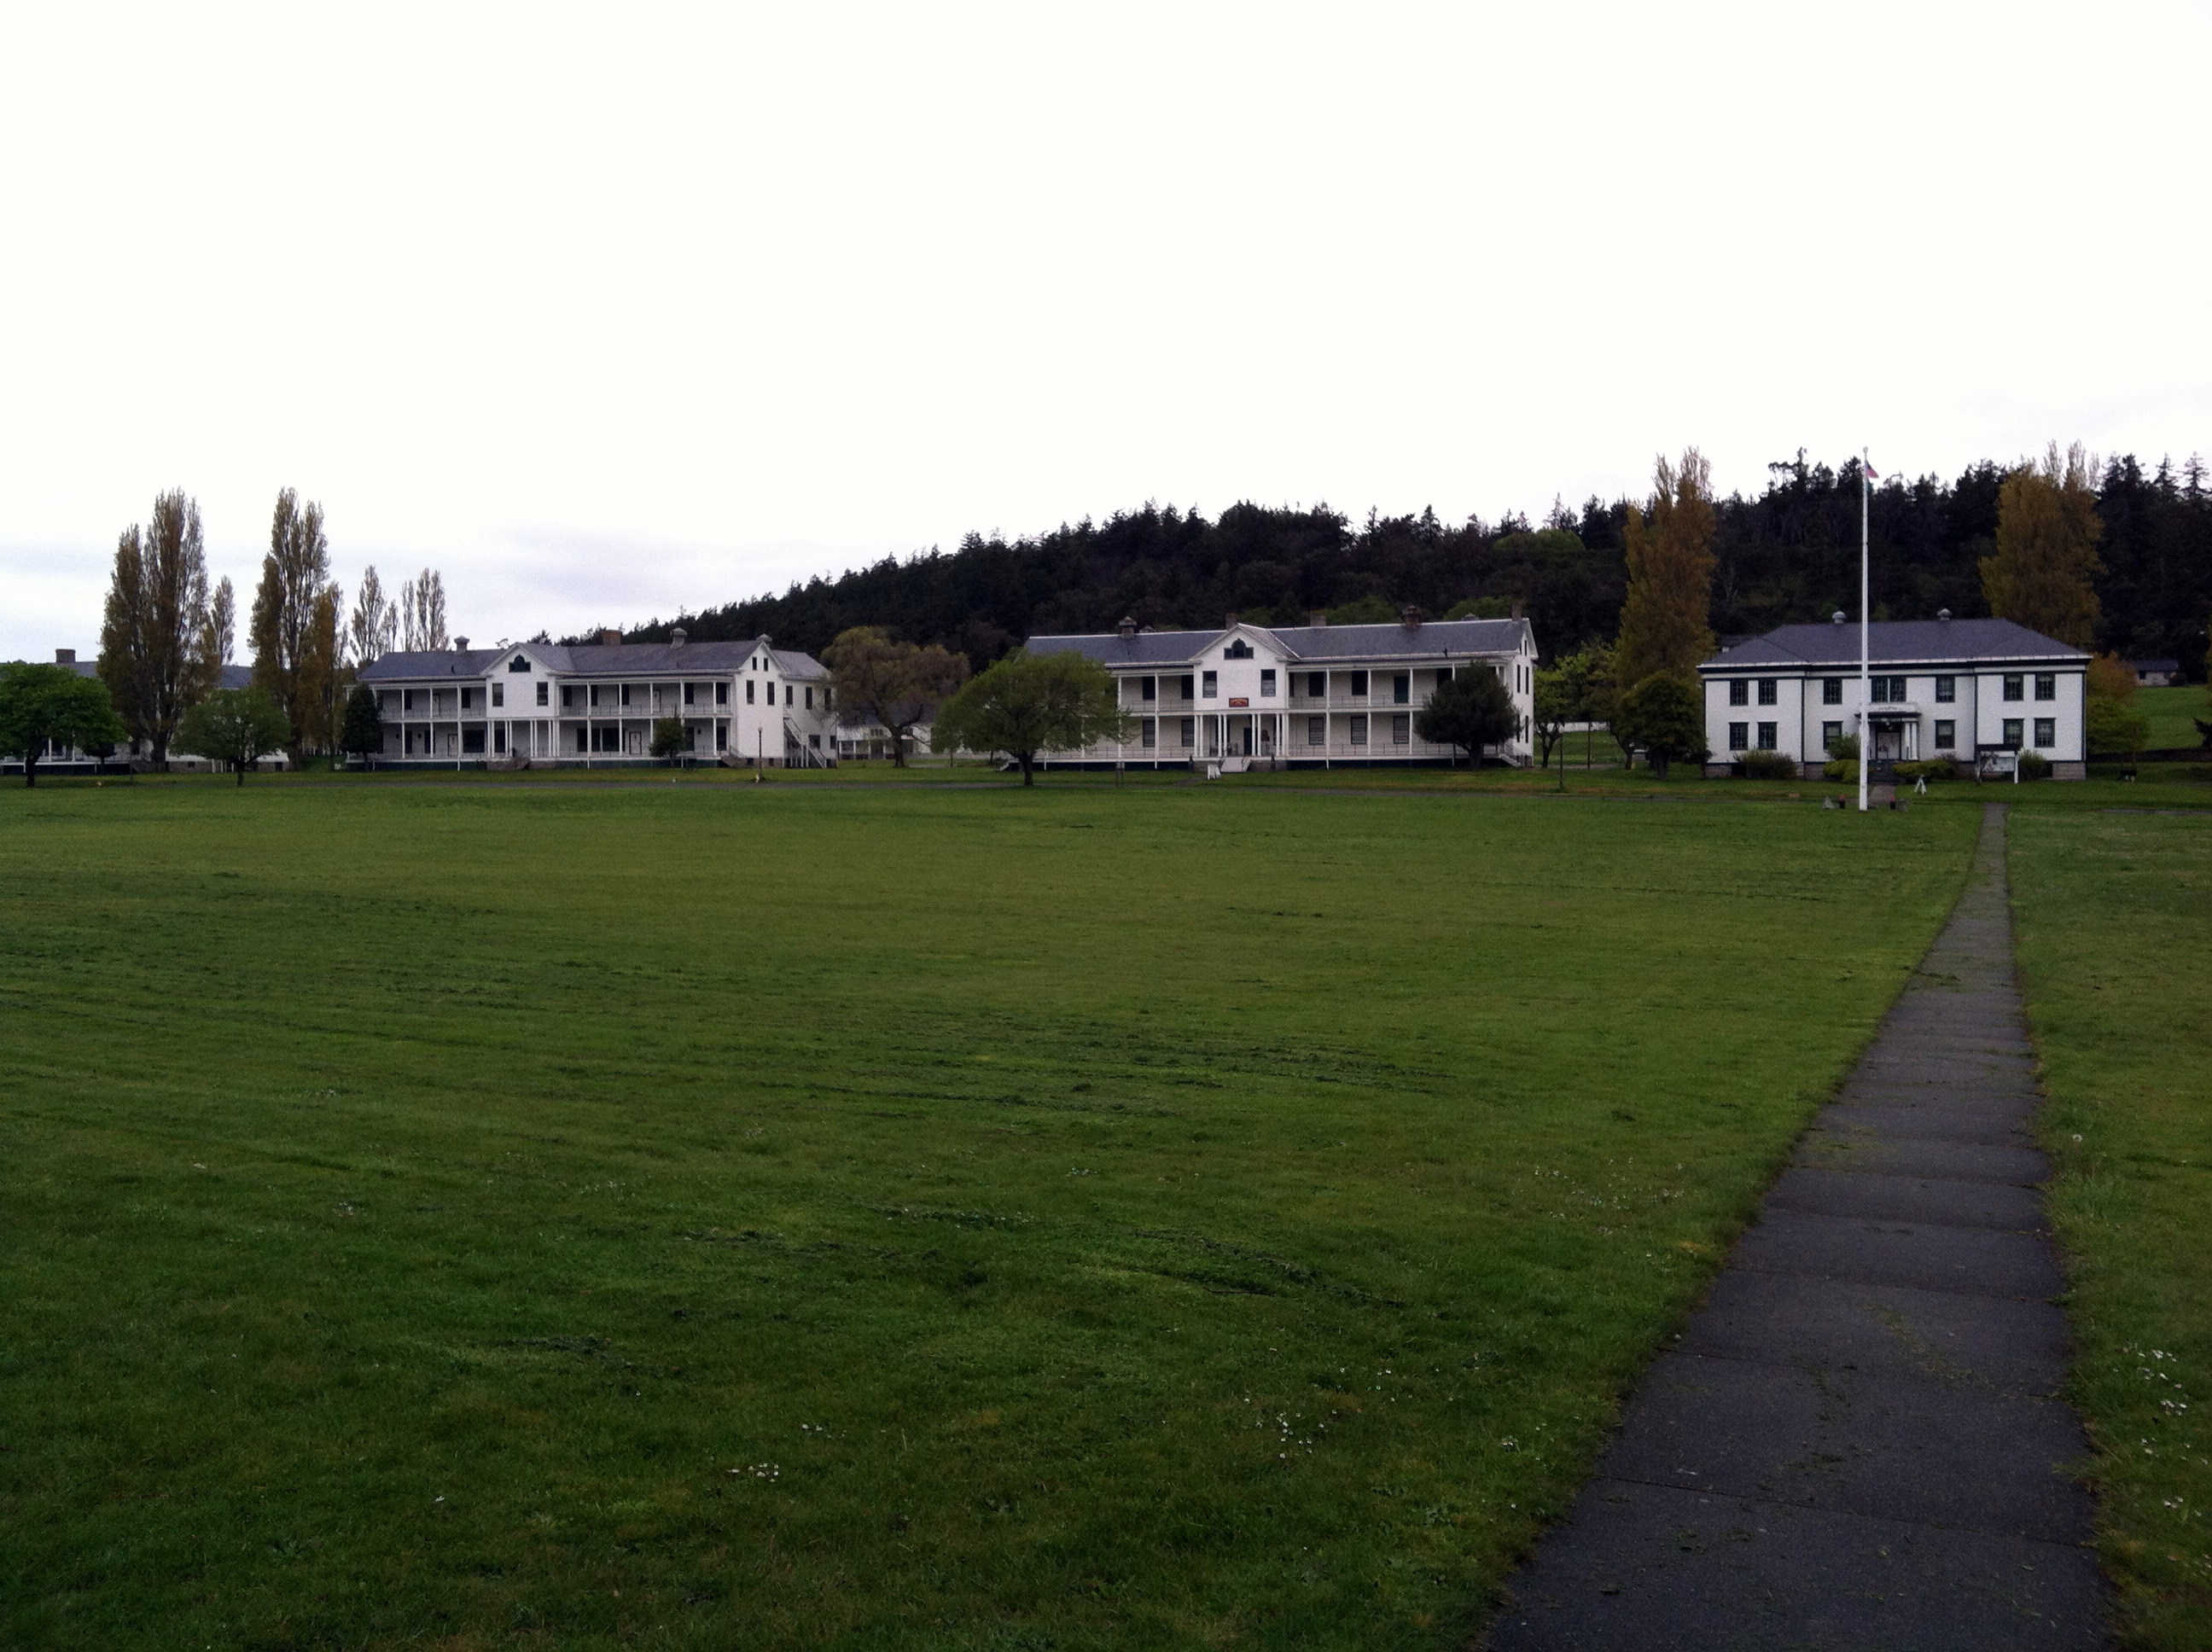 Fort Worden State Park Parade Grounds photo by Carrie Uffindell